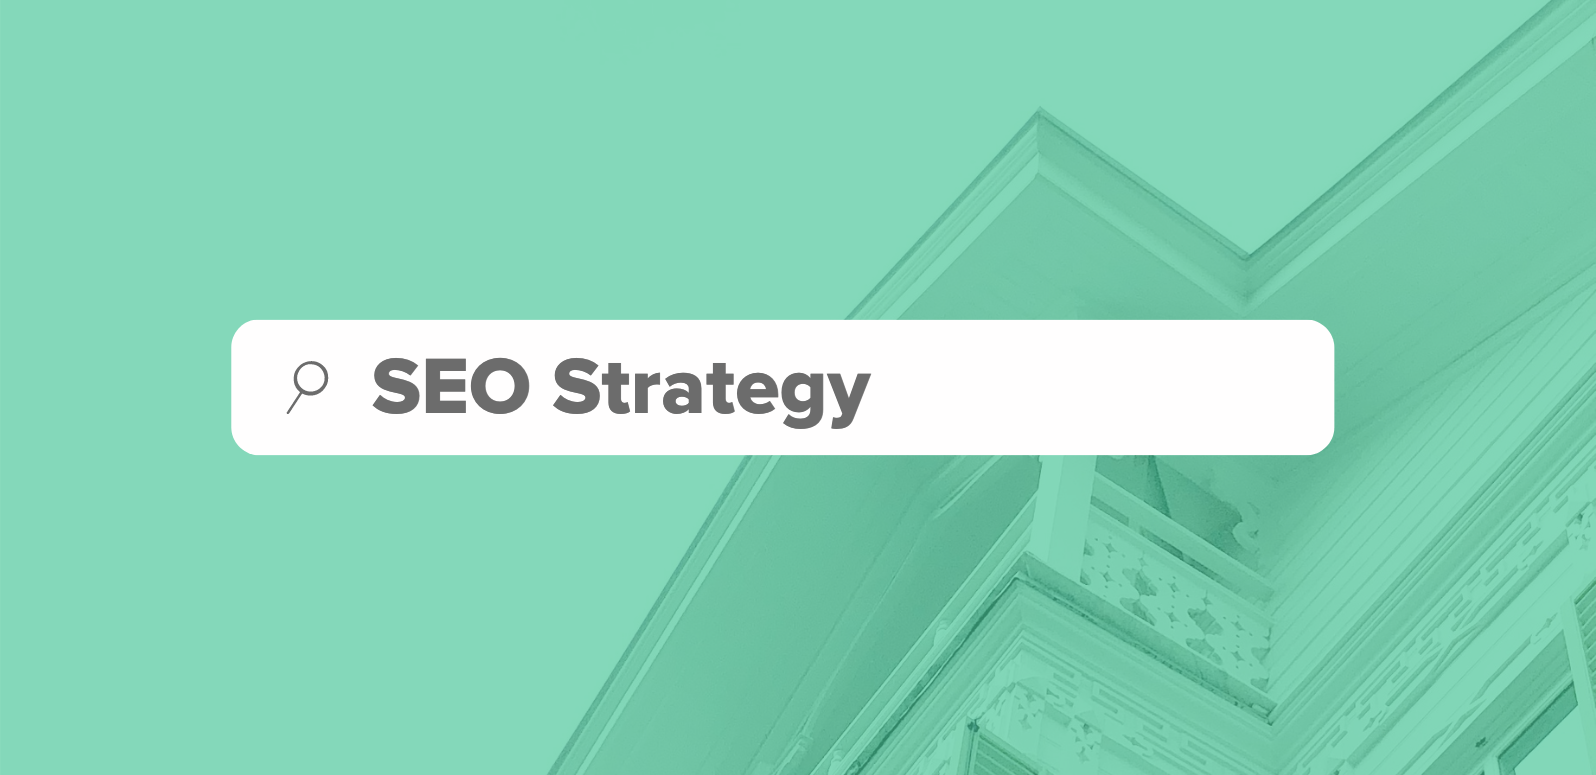 Real Estate SEO: 5 Tactics to Start a Successful SEO Strategy